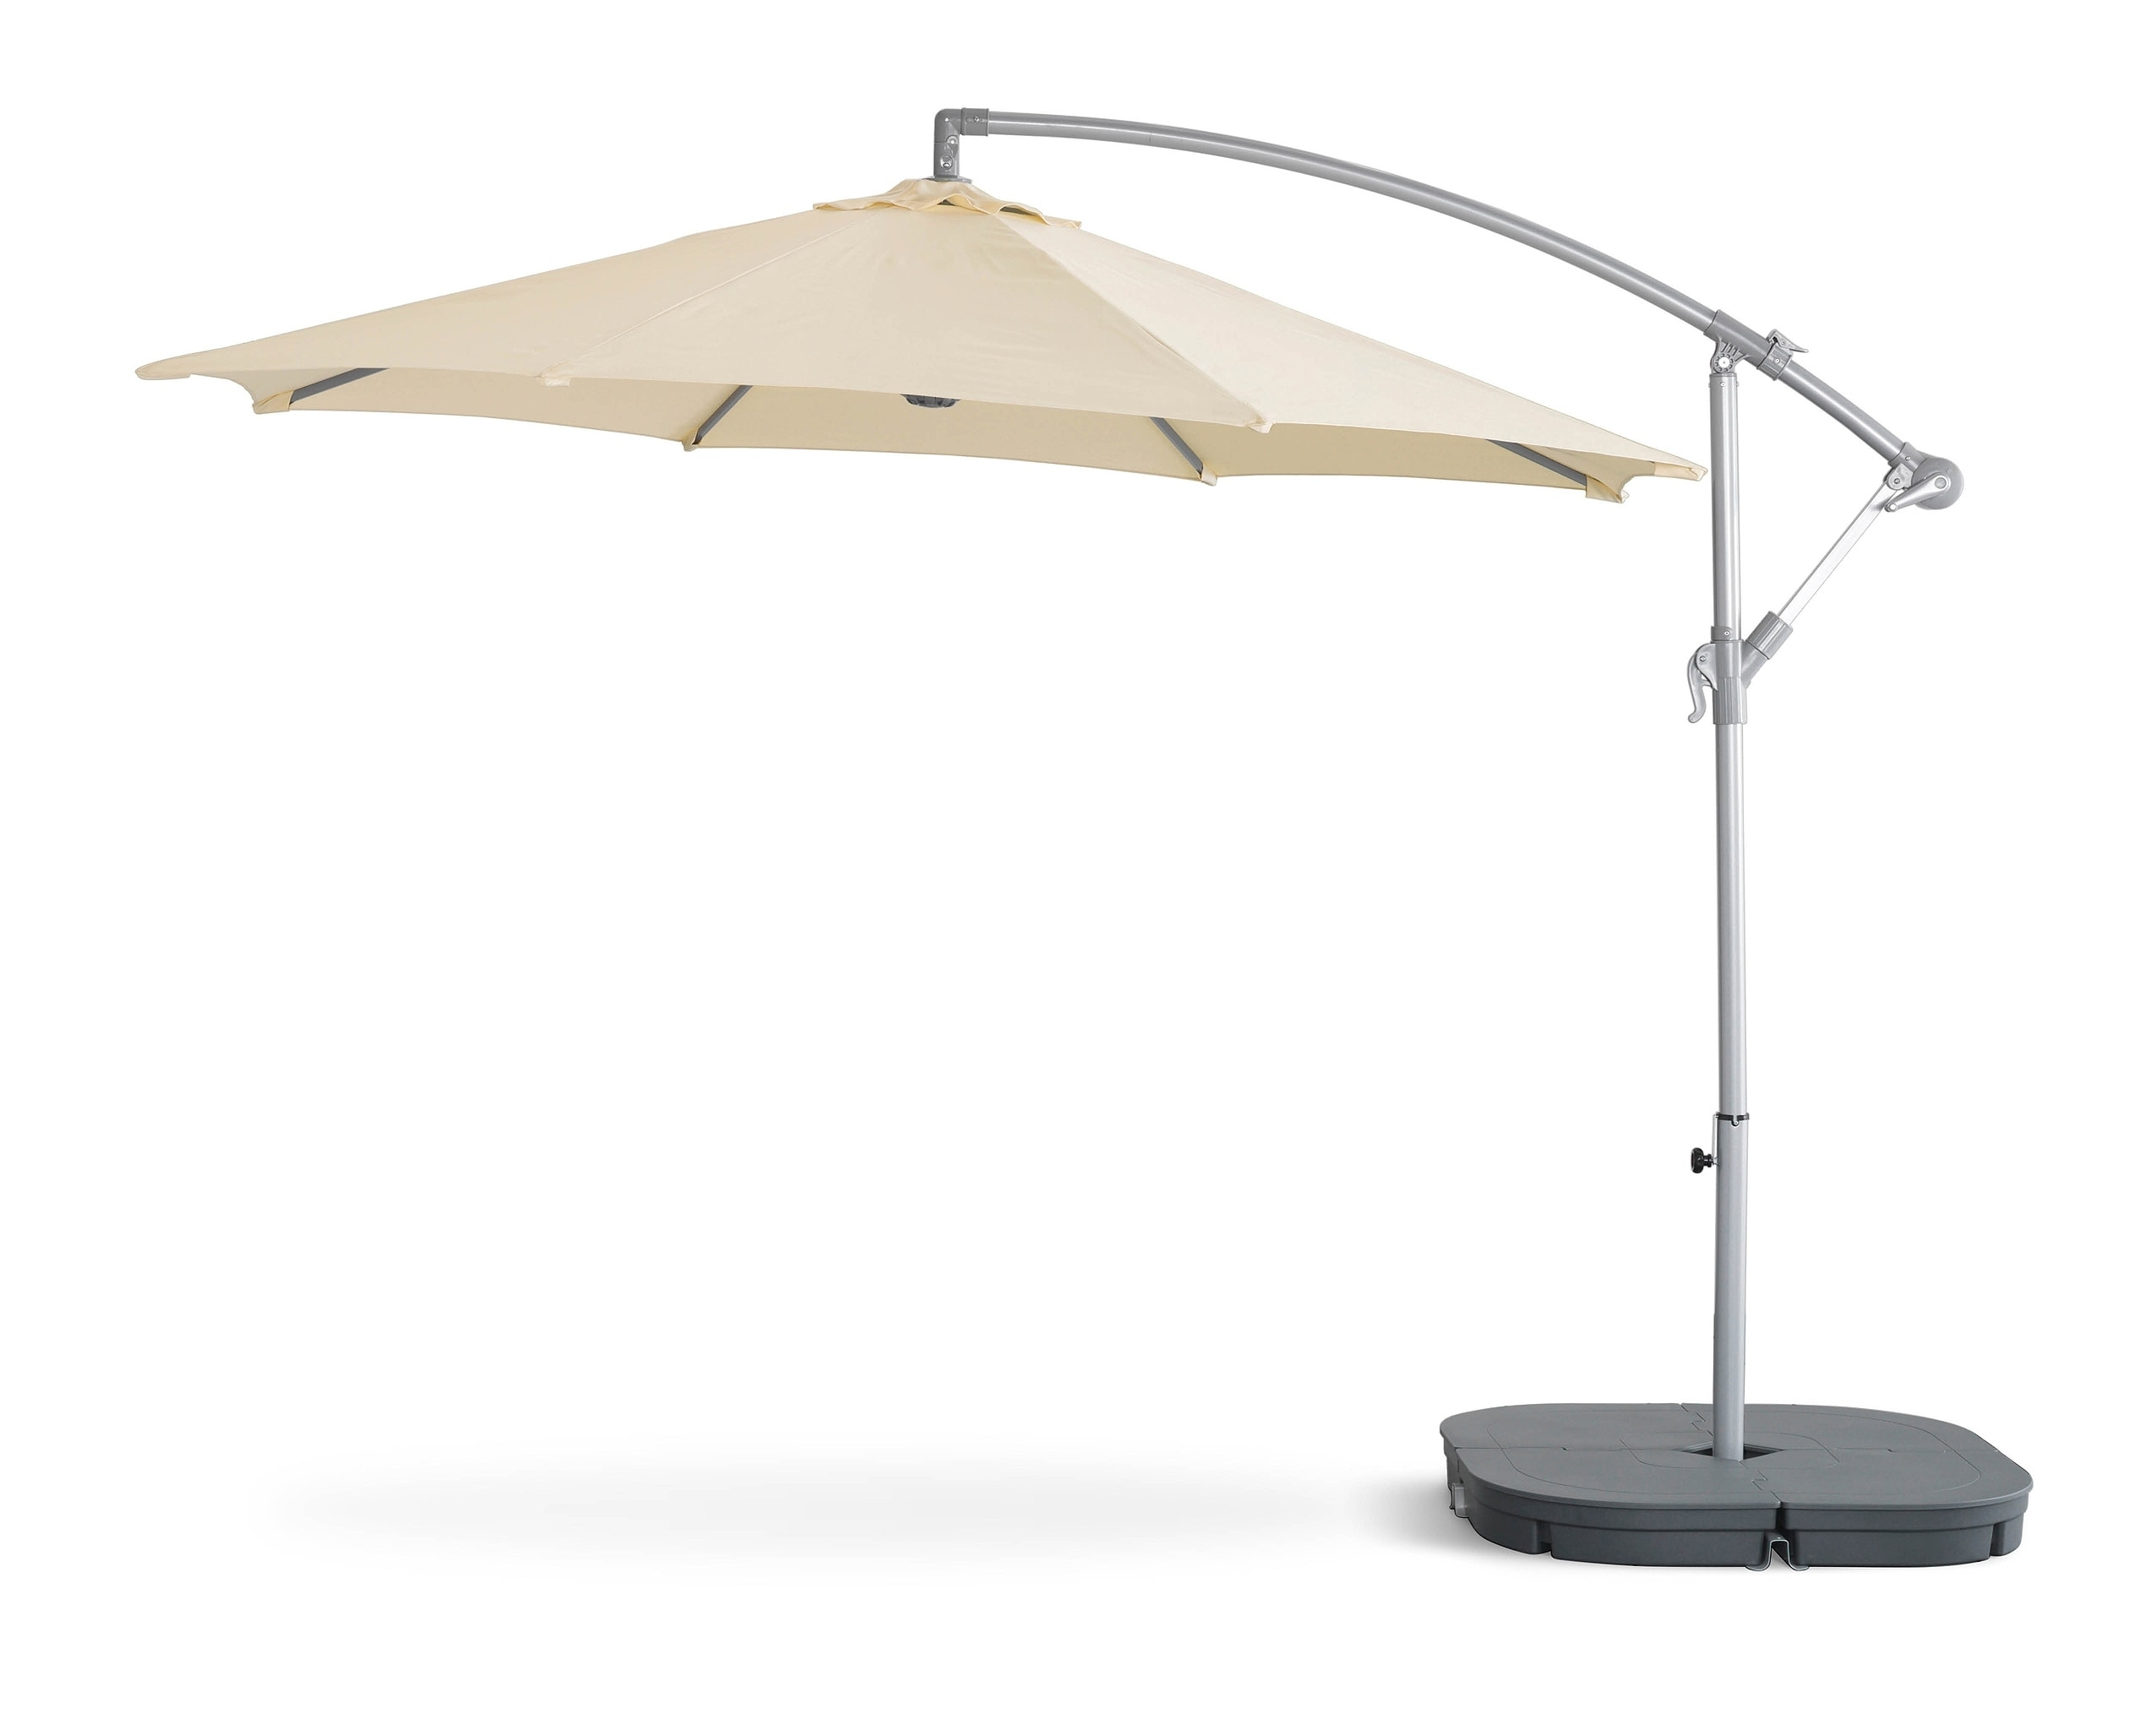 Ikea Patio Umbrellas In 2019 Parasols & Gazebos Ikea (View 7 of 20)